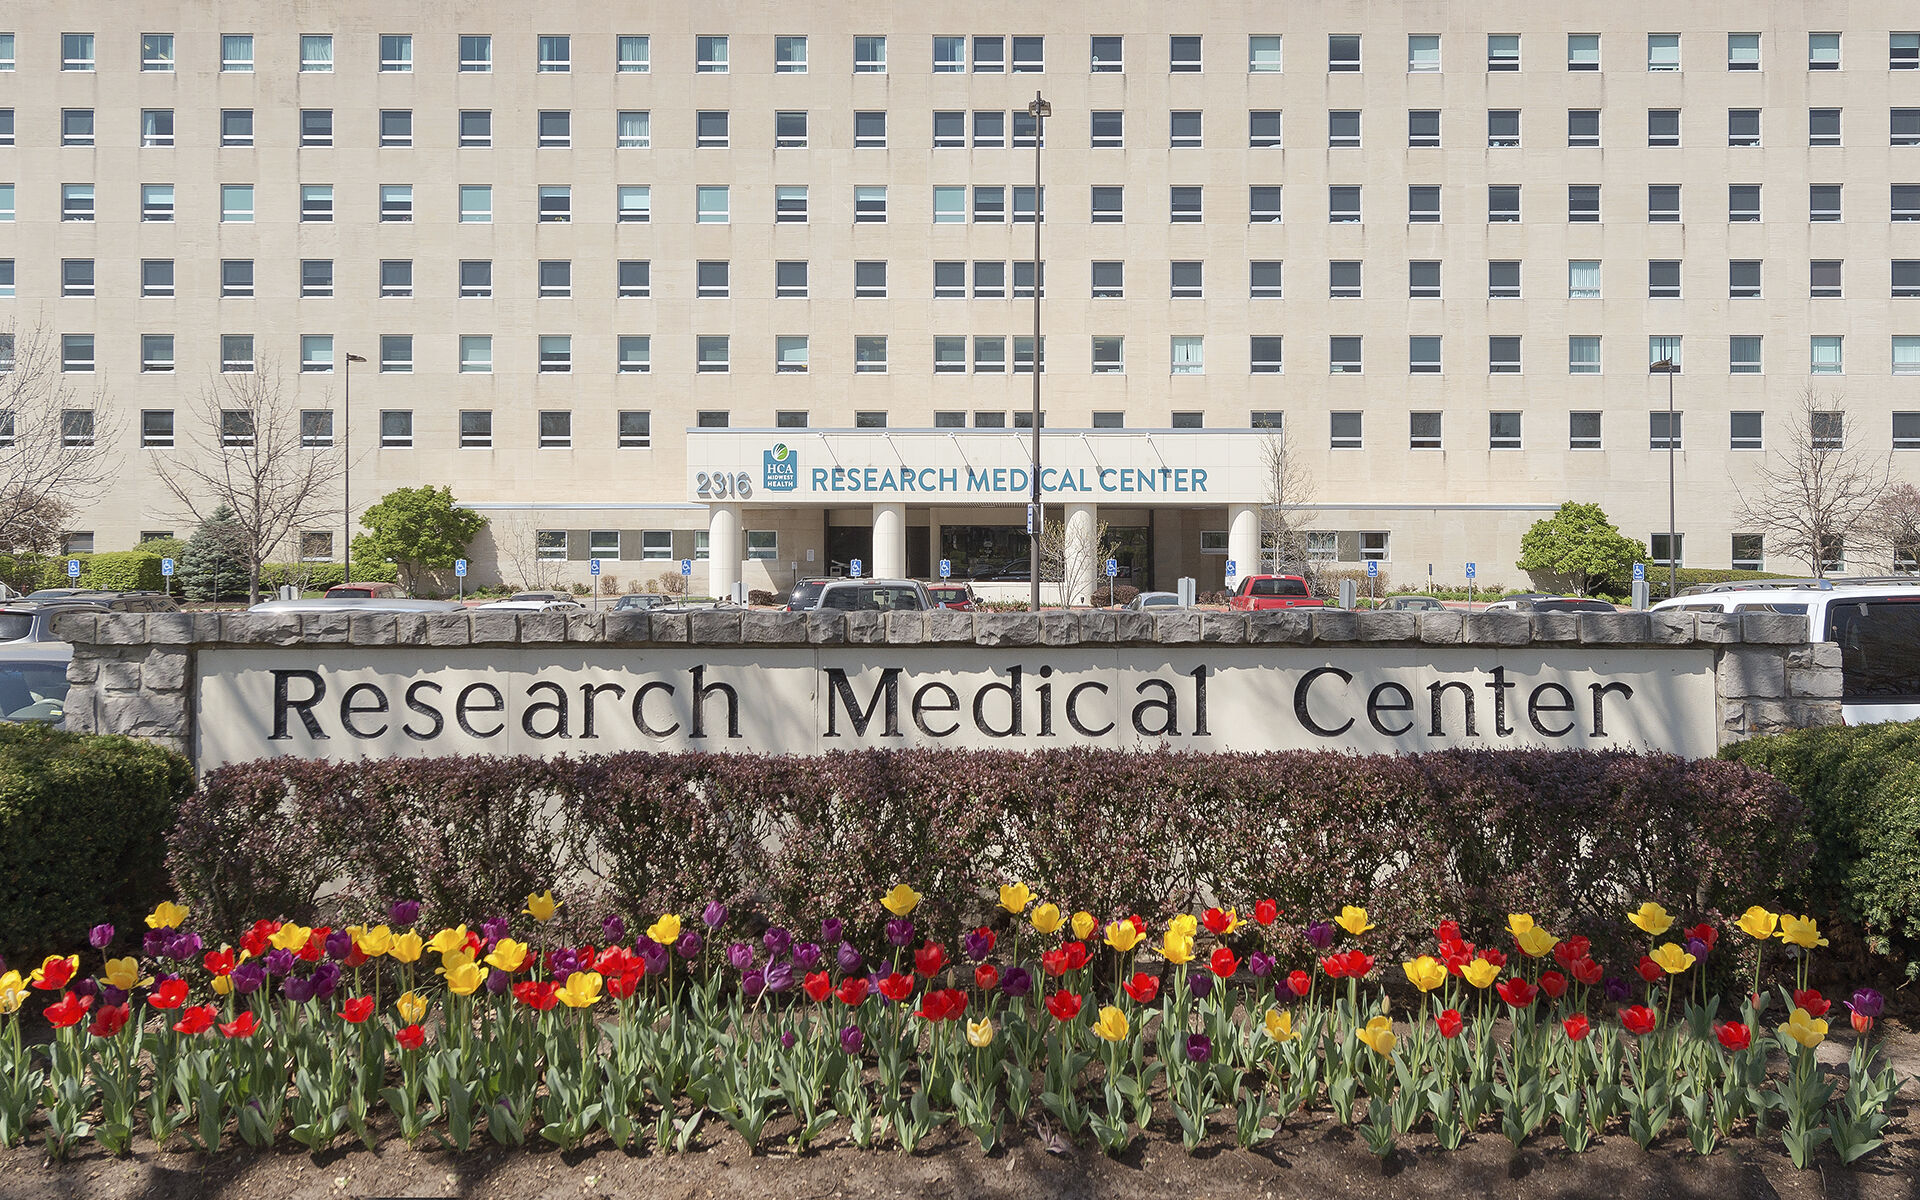 Fire Alarm Replacement - Research Medical Center